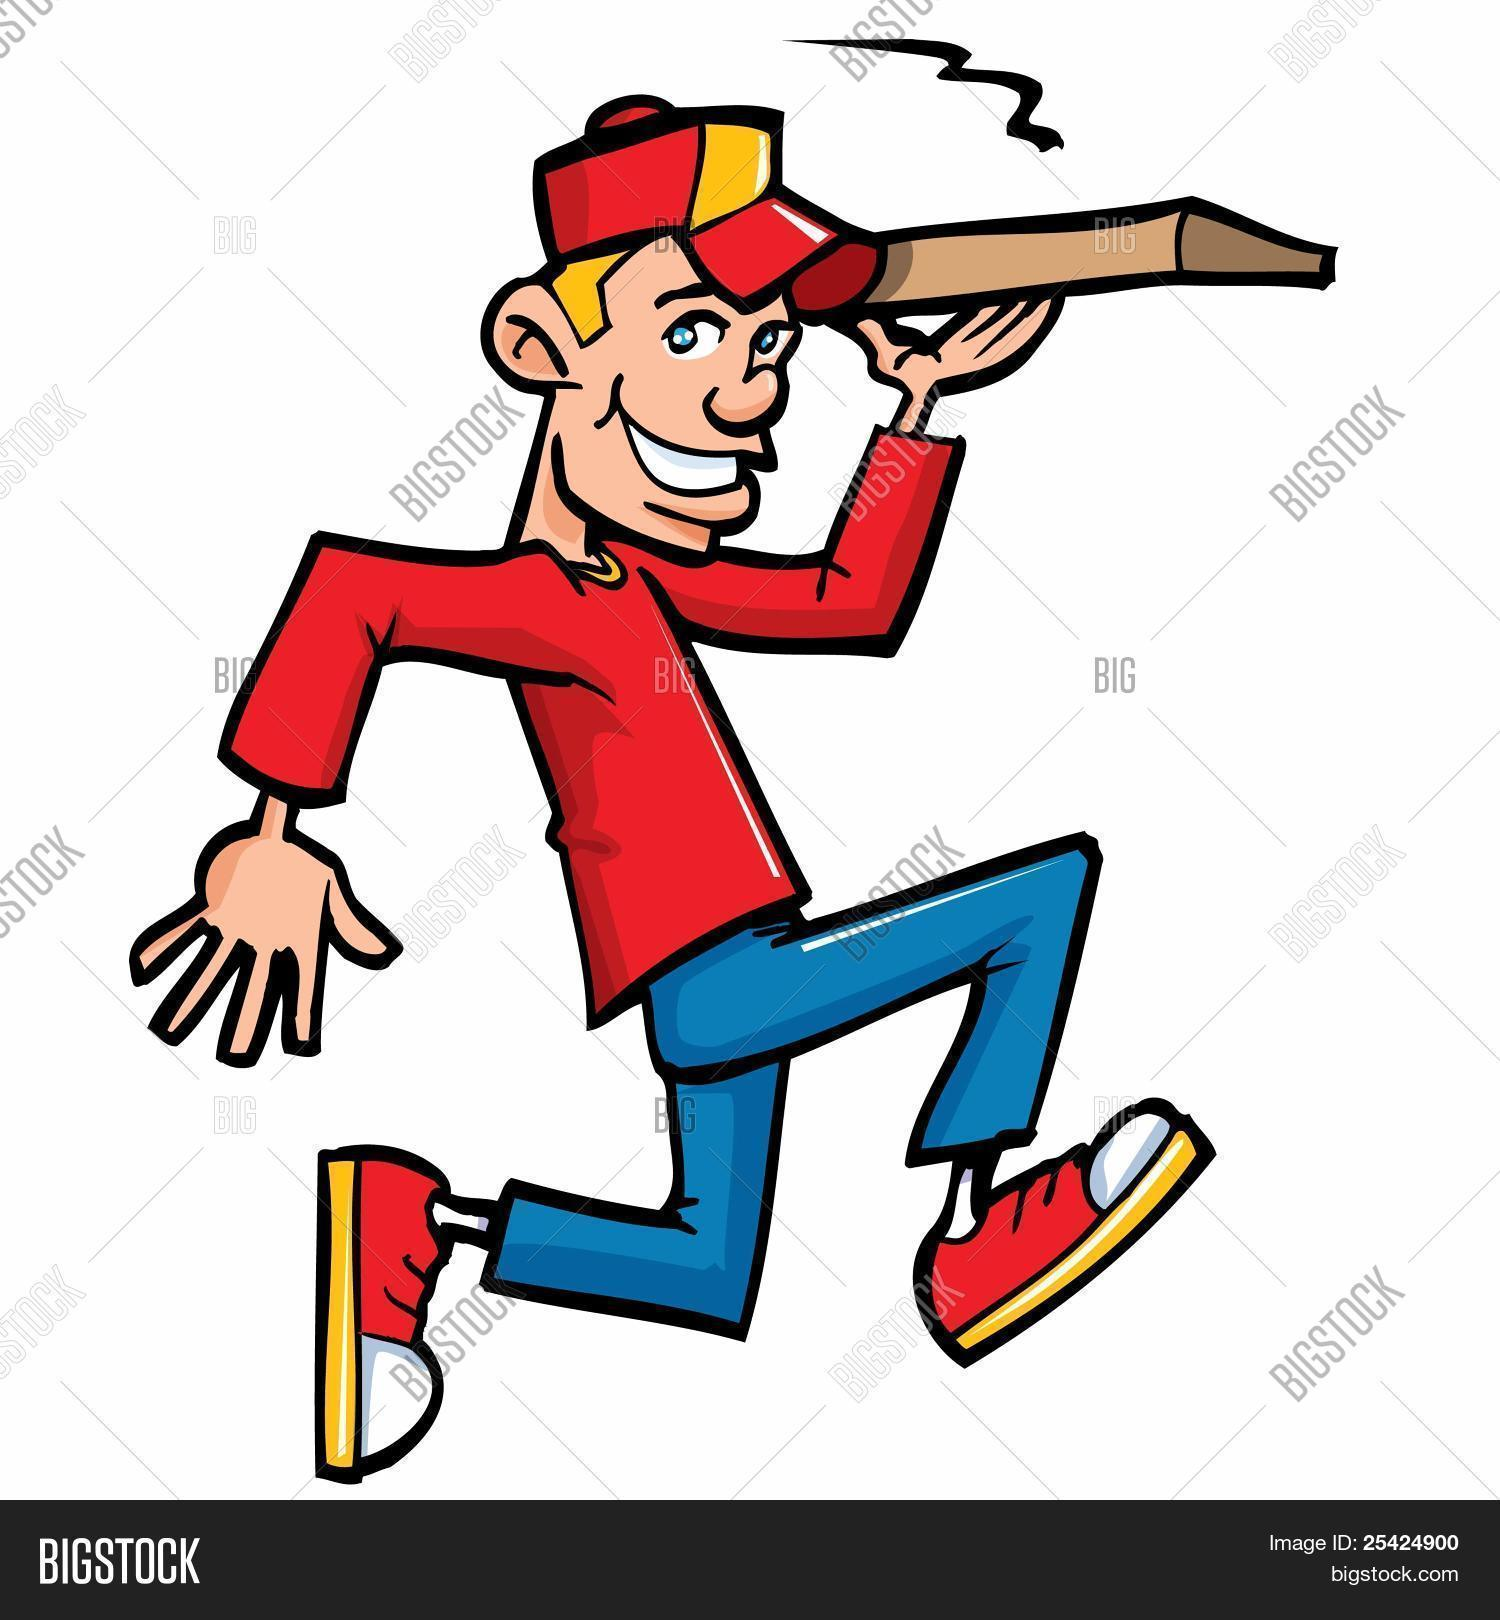 1500x1620 Cartoon Of Pizza Running Delivery Boy Image